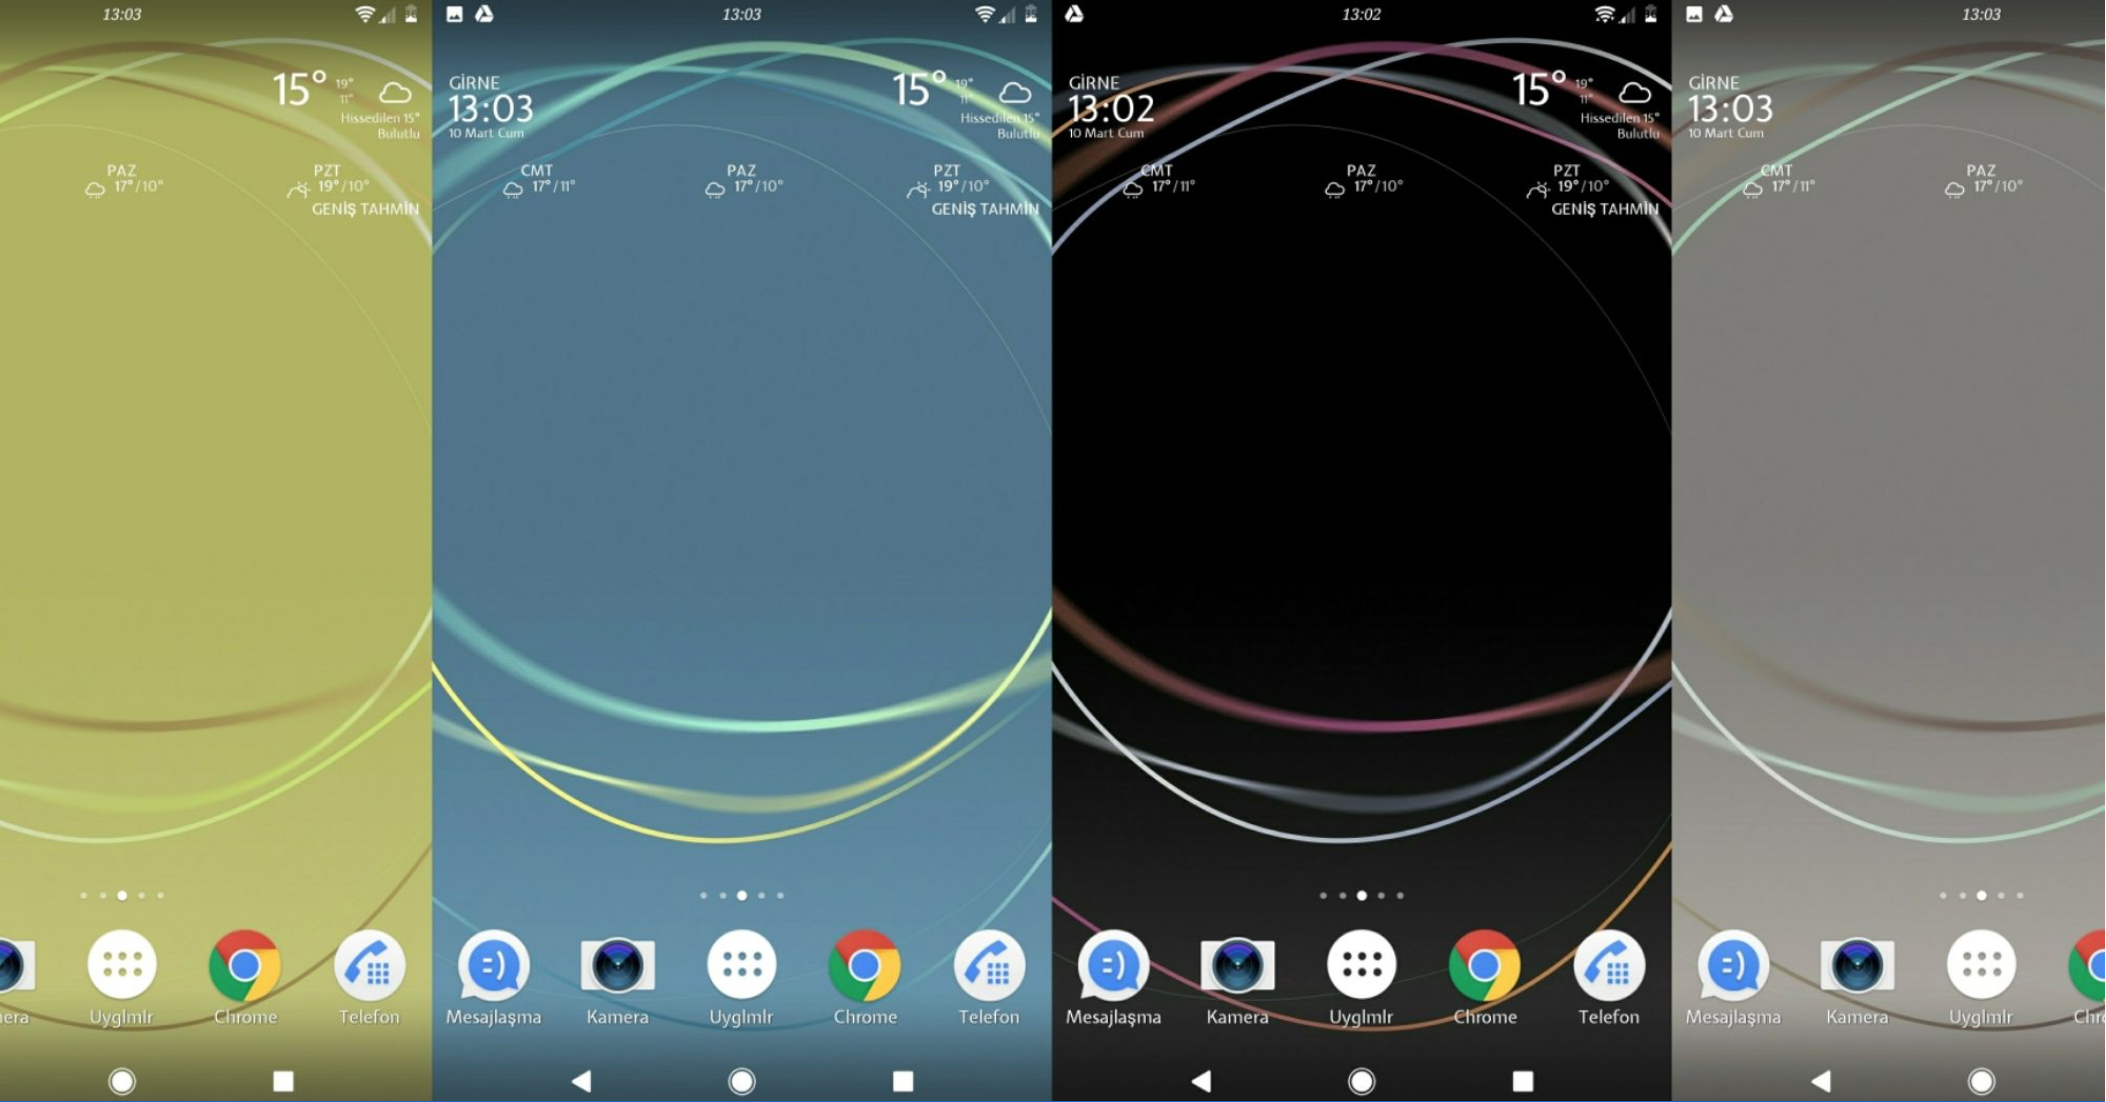 Download Xperia Loops Live Wallpaper From Xperia Xz Premium